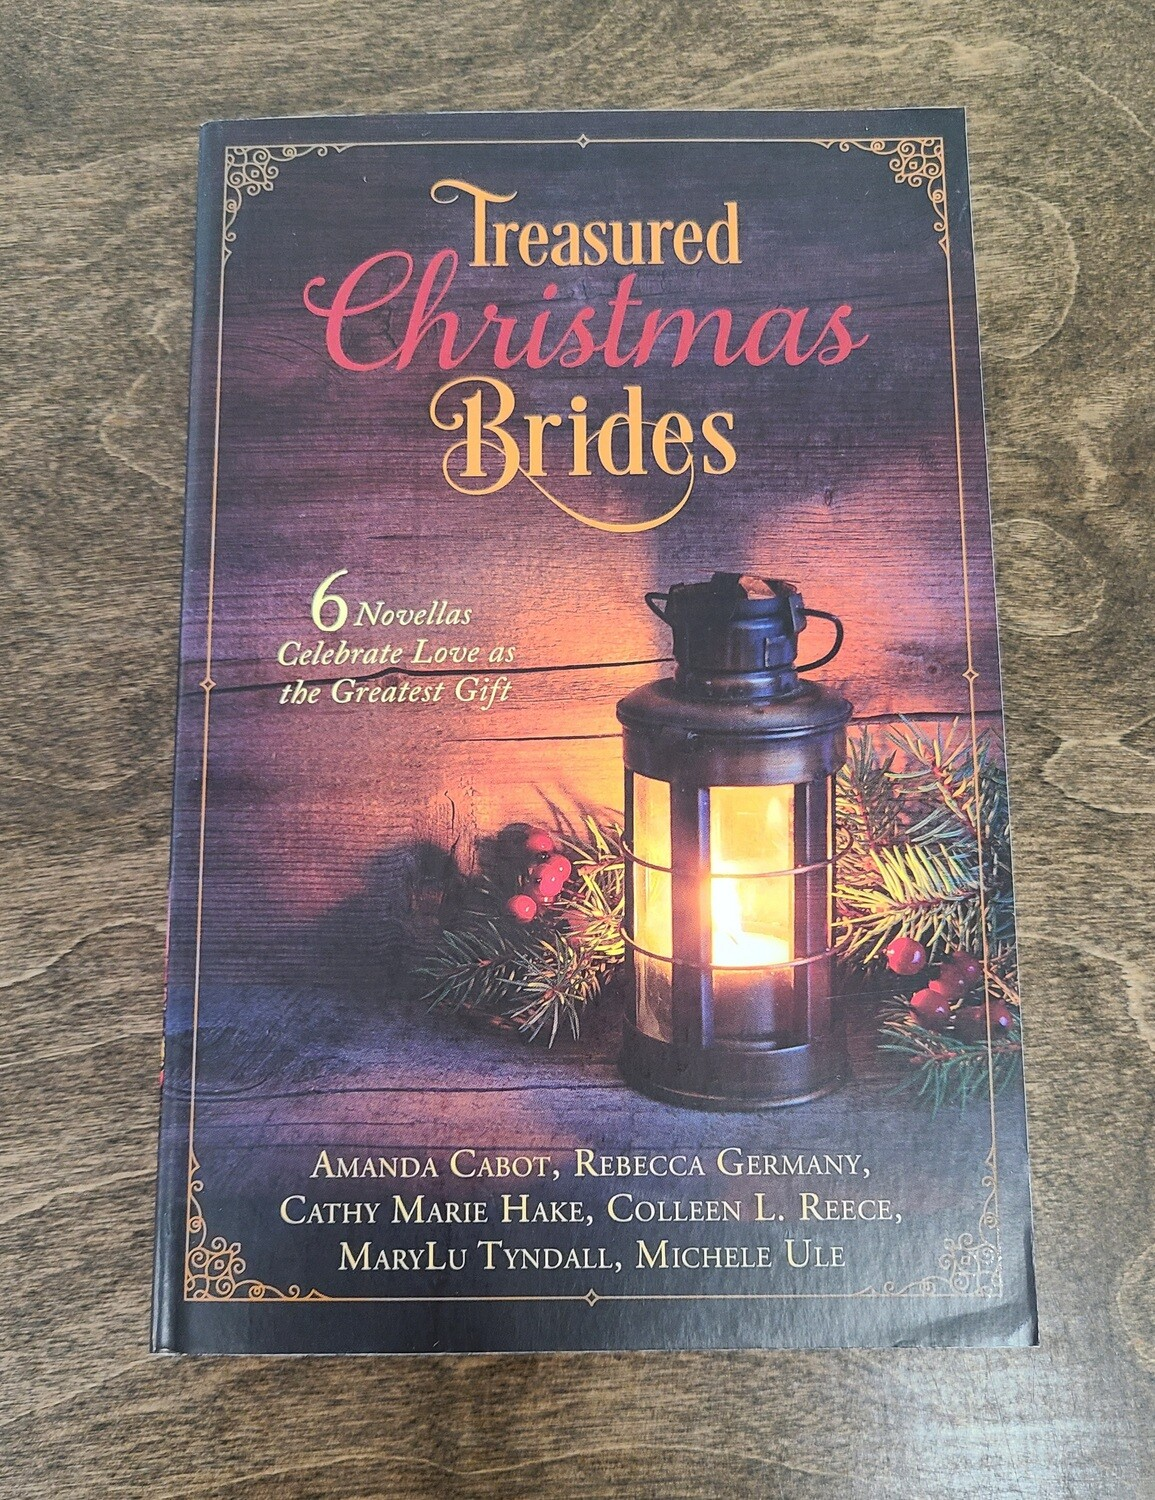 Treasured Christmas Brides by Amanda Cabot and Various Authors